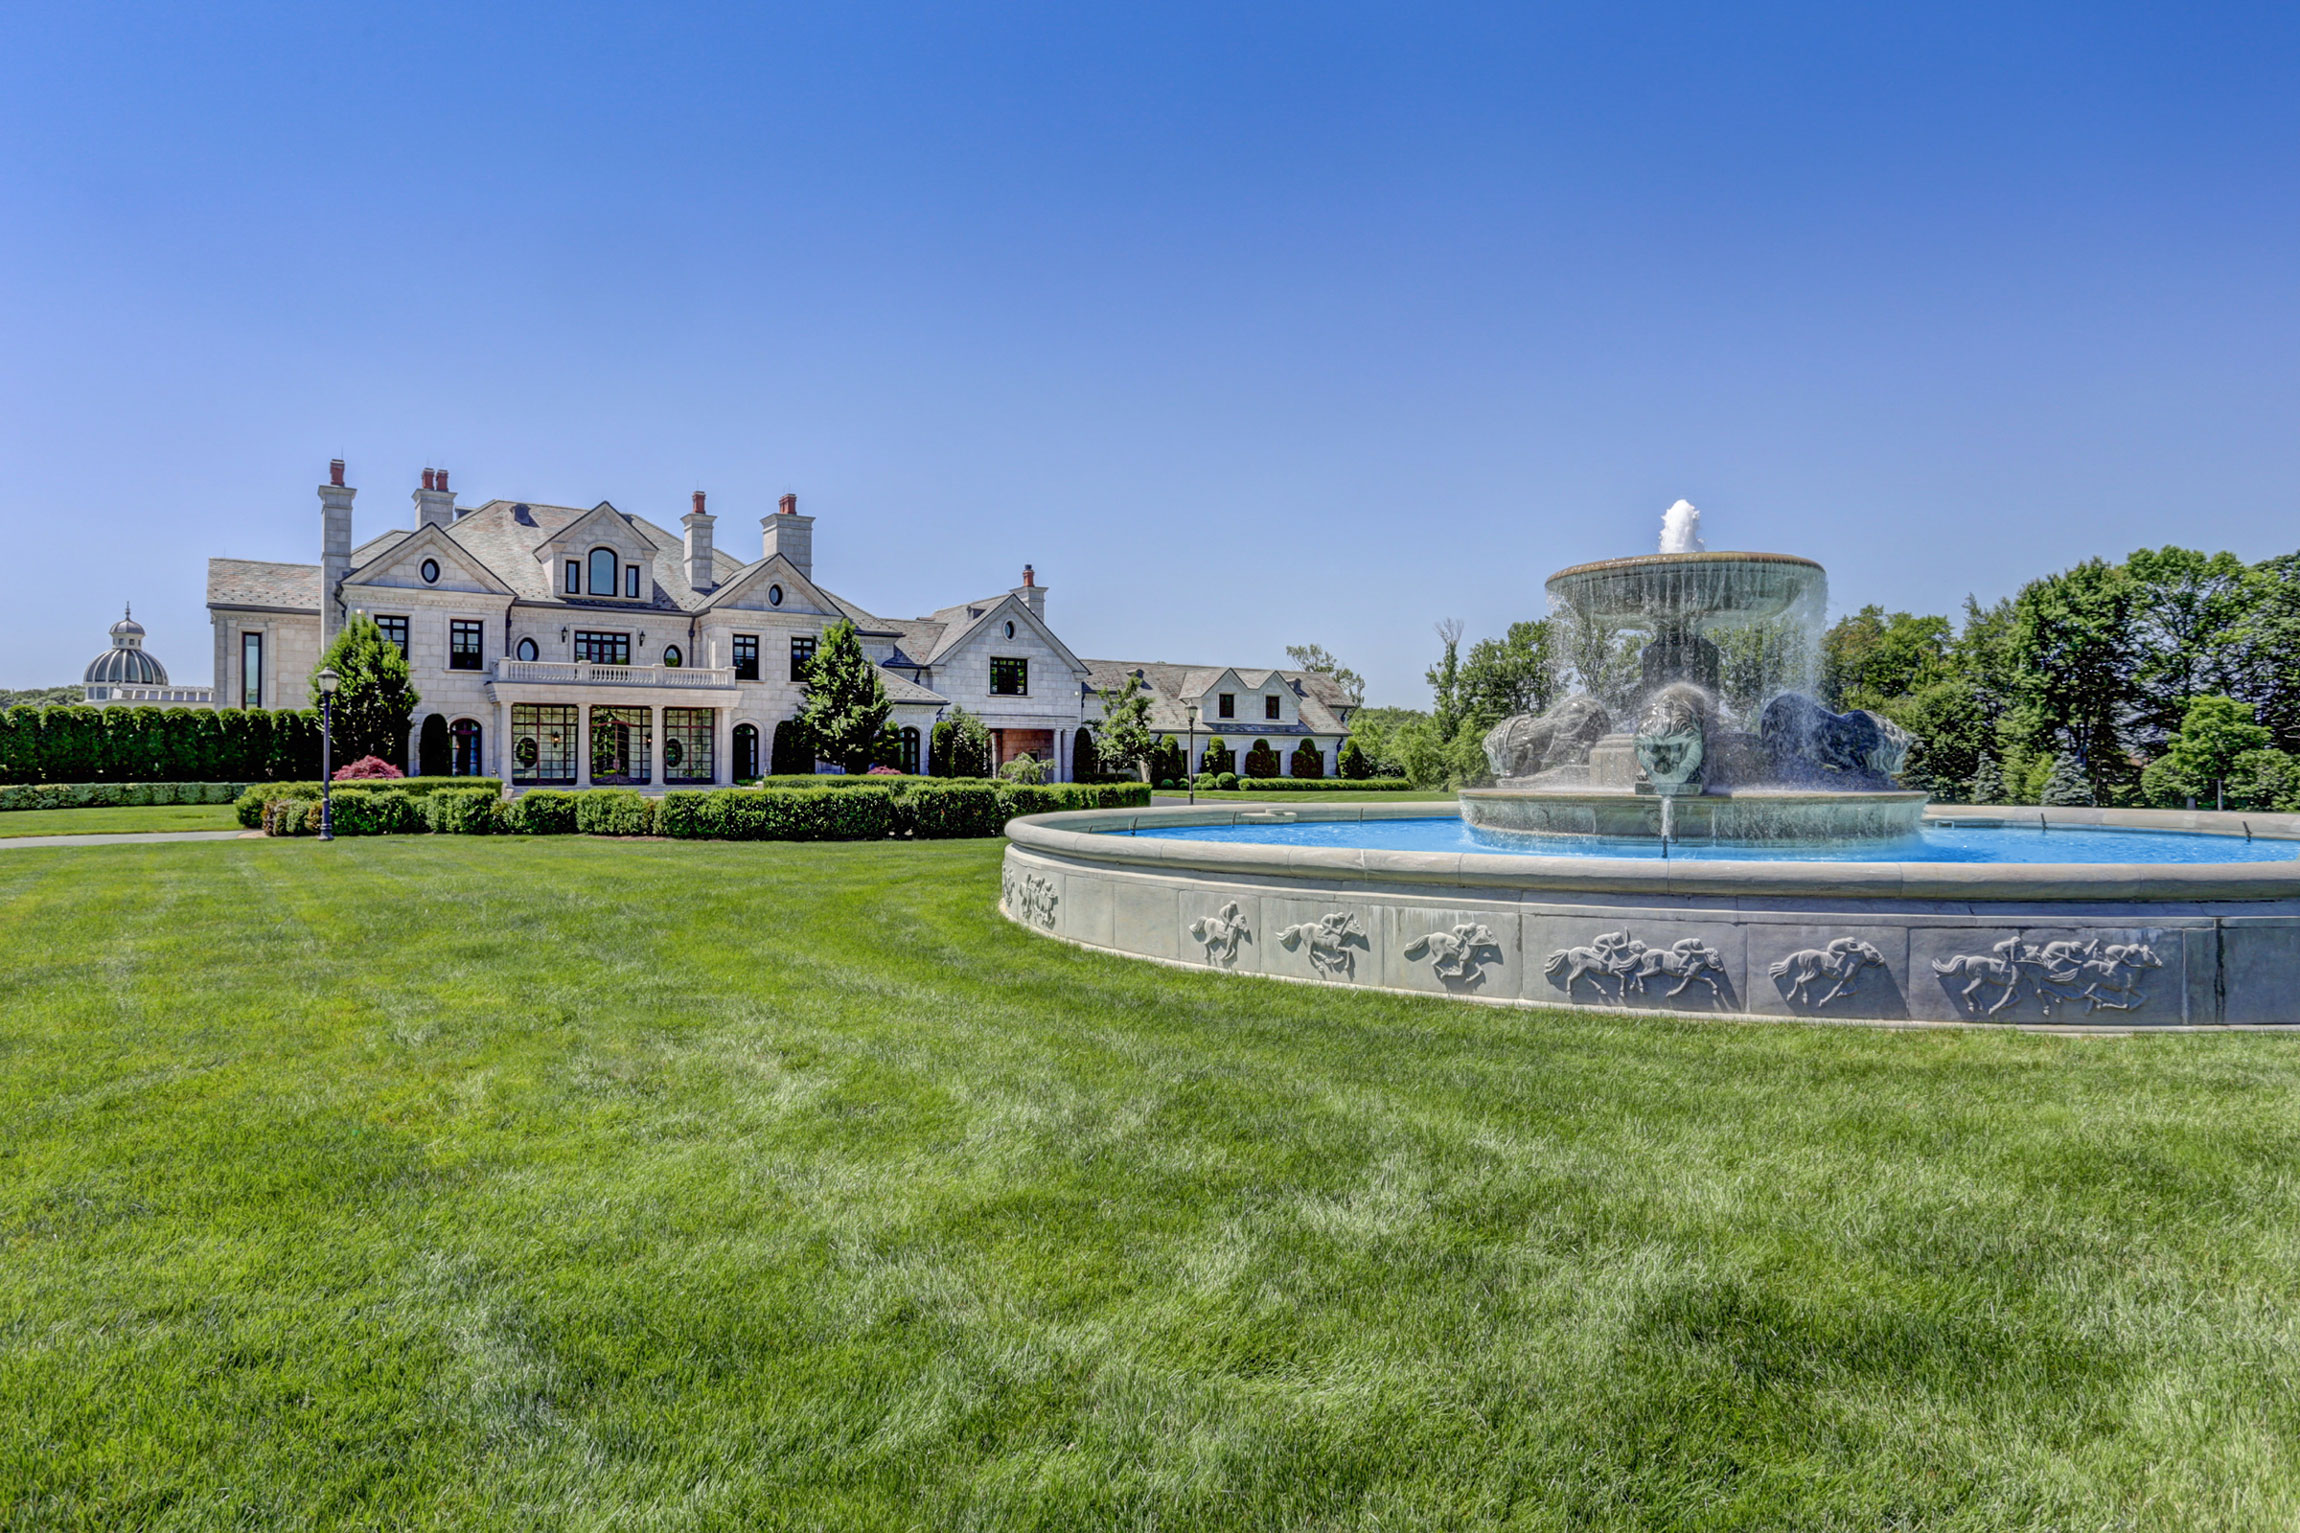 Discovery Stables is a world-class 160-acre horse farm and 25,000-square-foot manor house with resort-style amenities, in the heart of the Northeast horse racing industry.